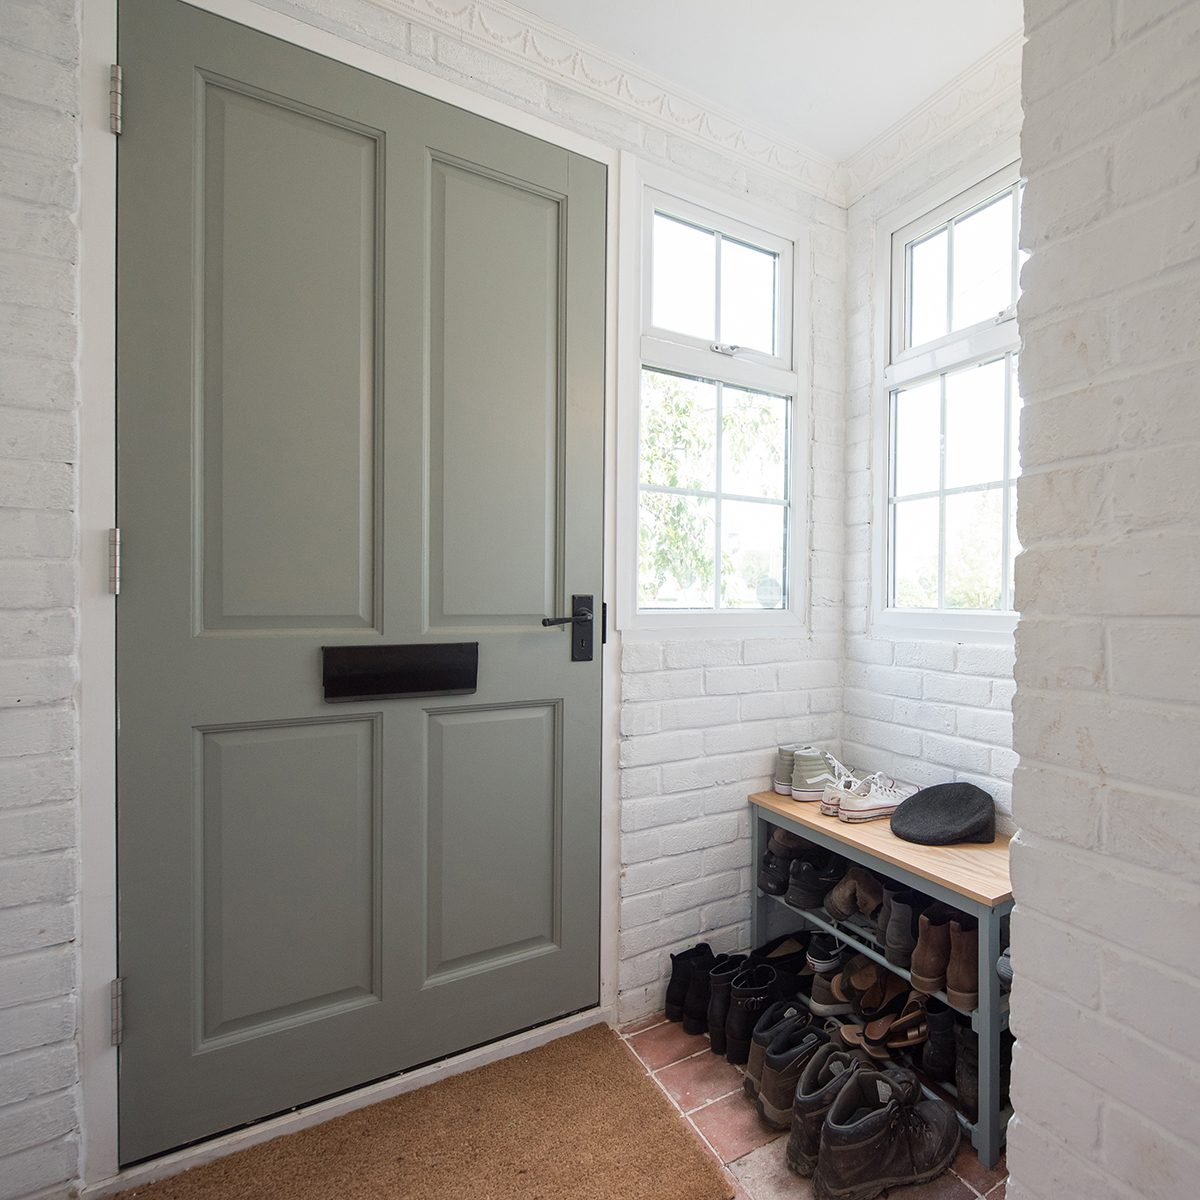 A general interior view of a entrance hall porch with sage green front door and shoe rack storage within a home